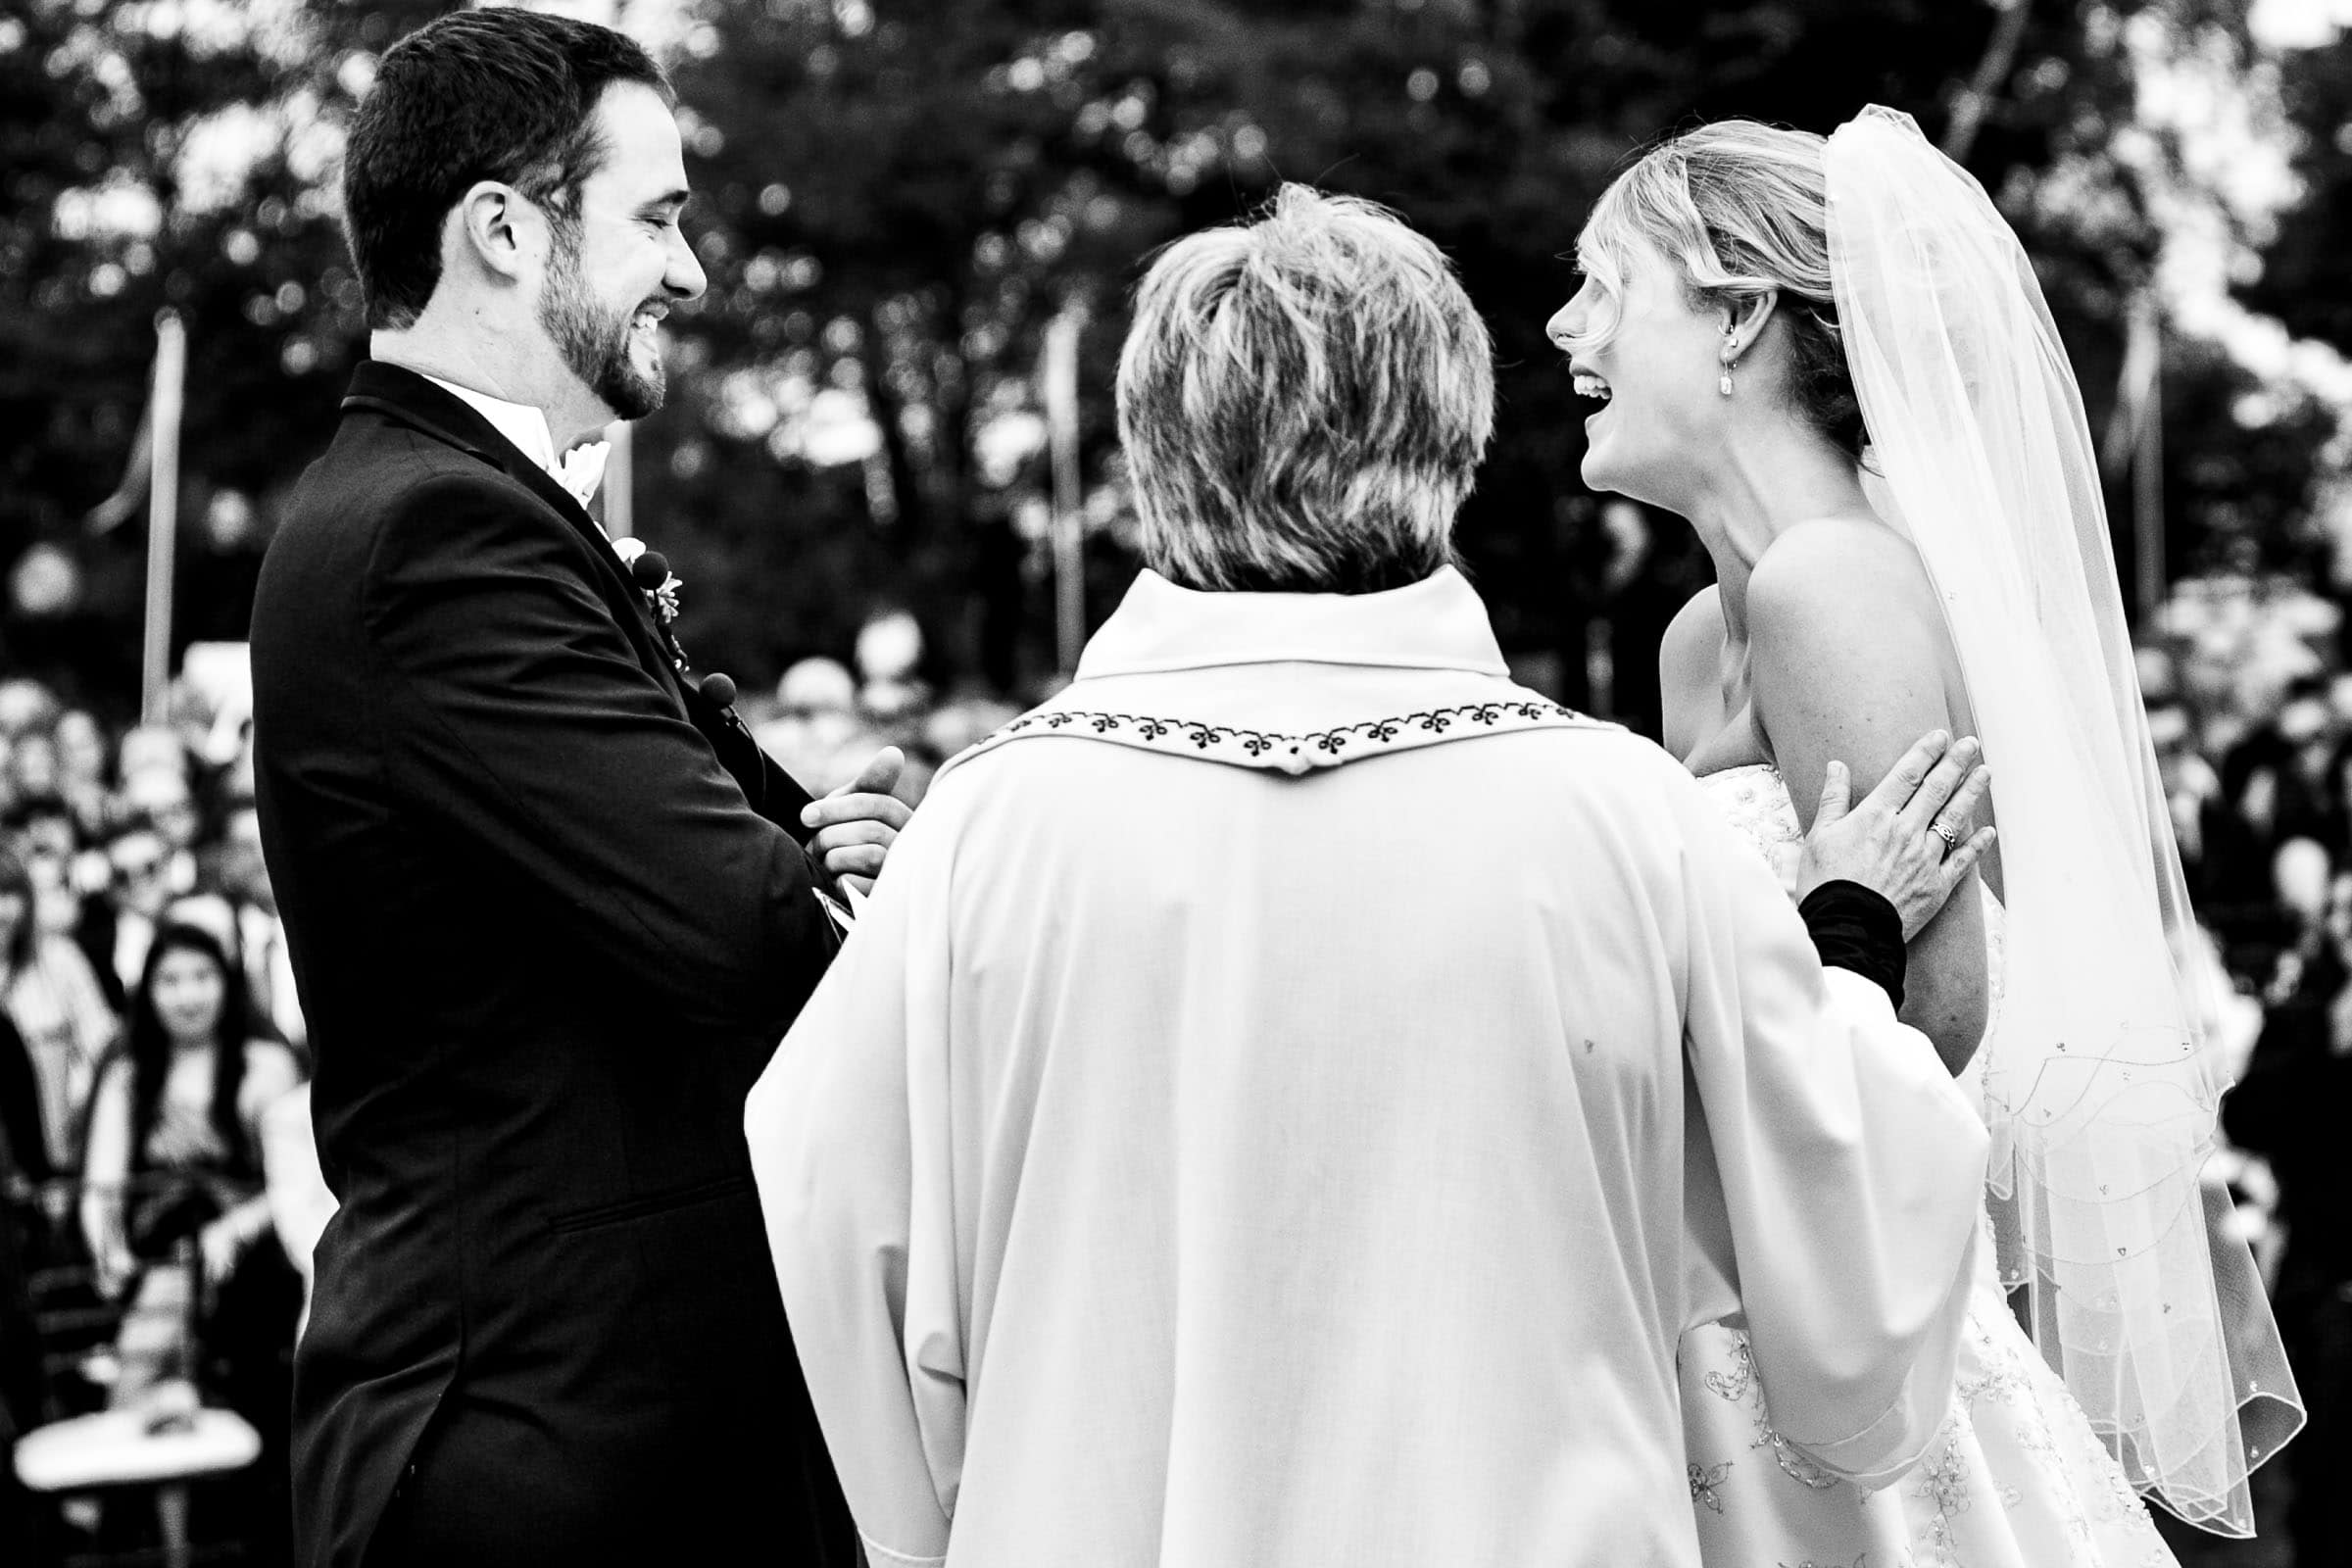 Bride and groom laughing during their Trapp Family Lodge wedding ceremony in Stowe, Vermont.